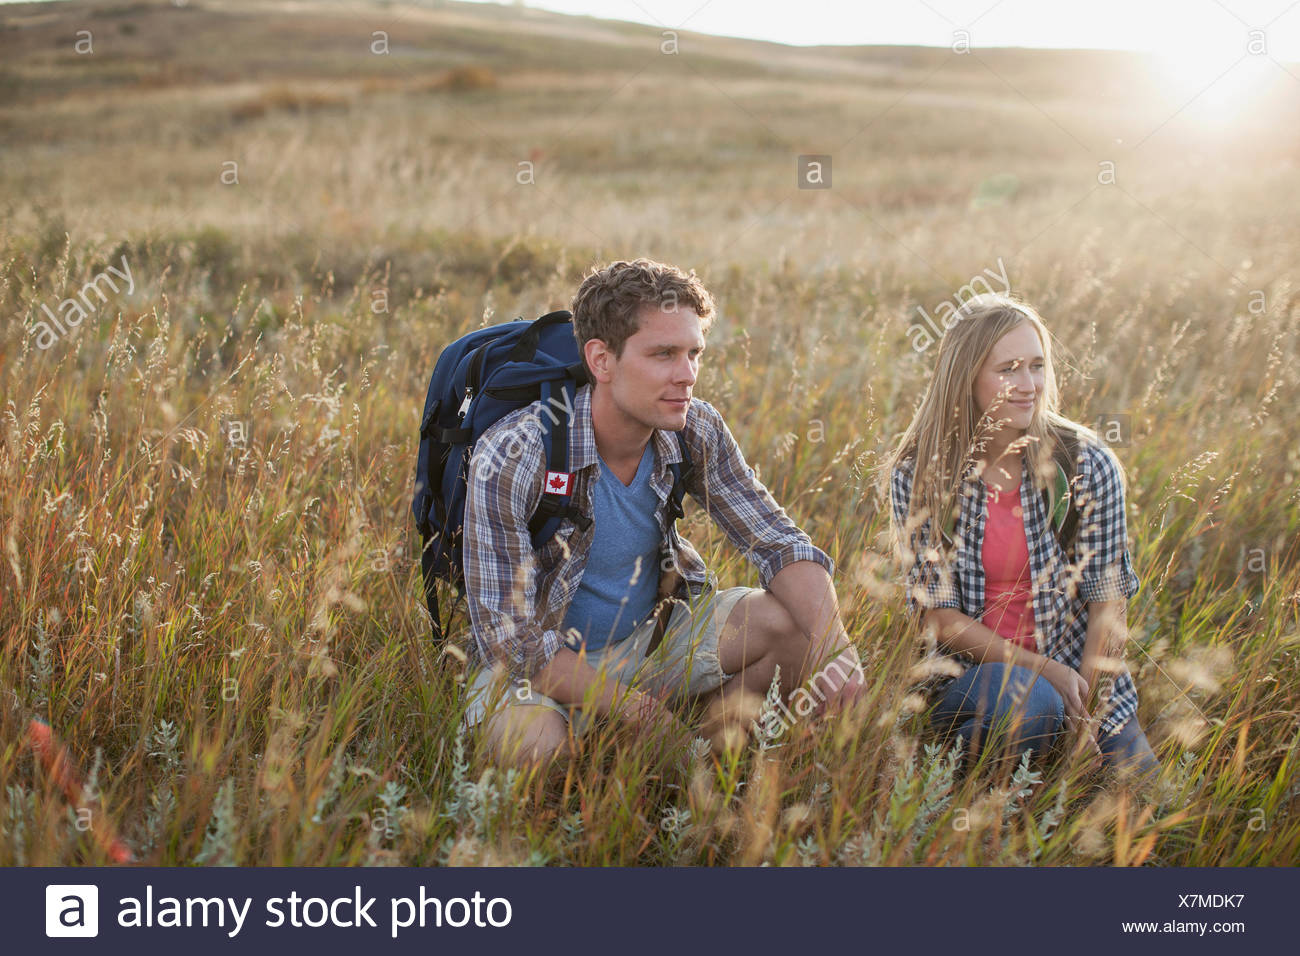 Couple crouching in grassy field. - Stock Image